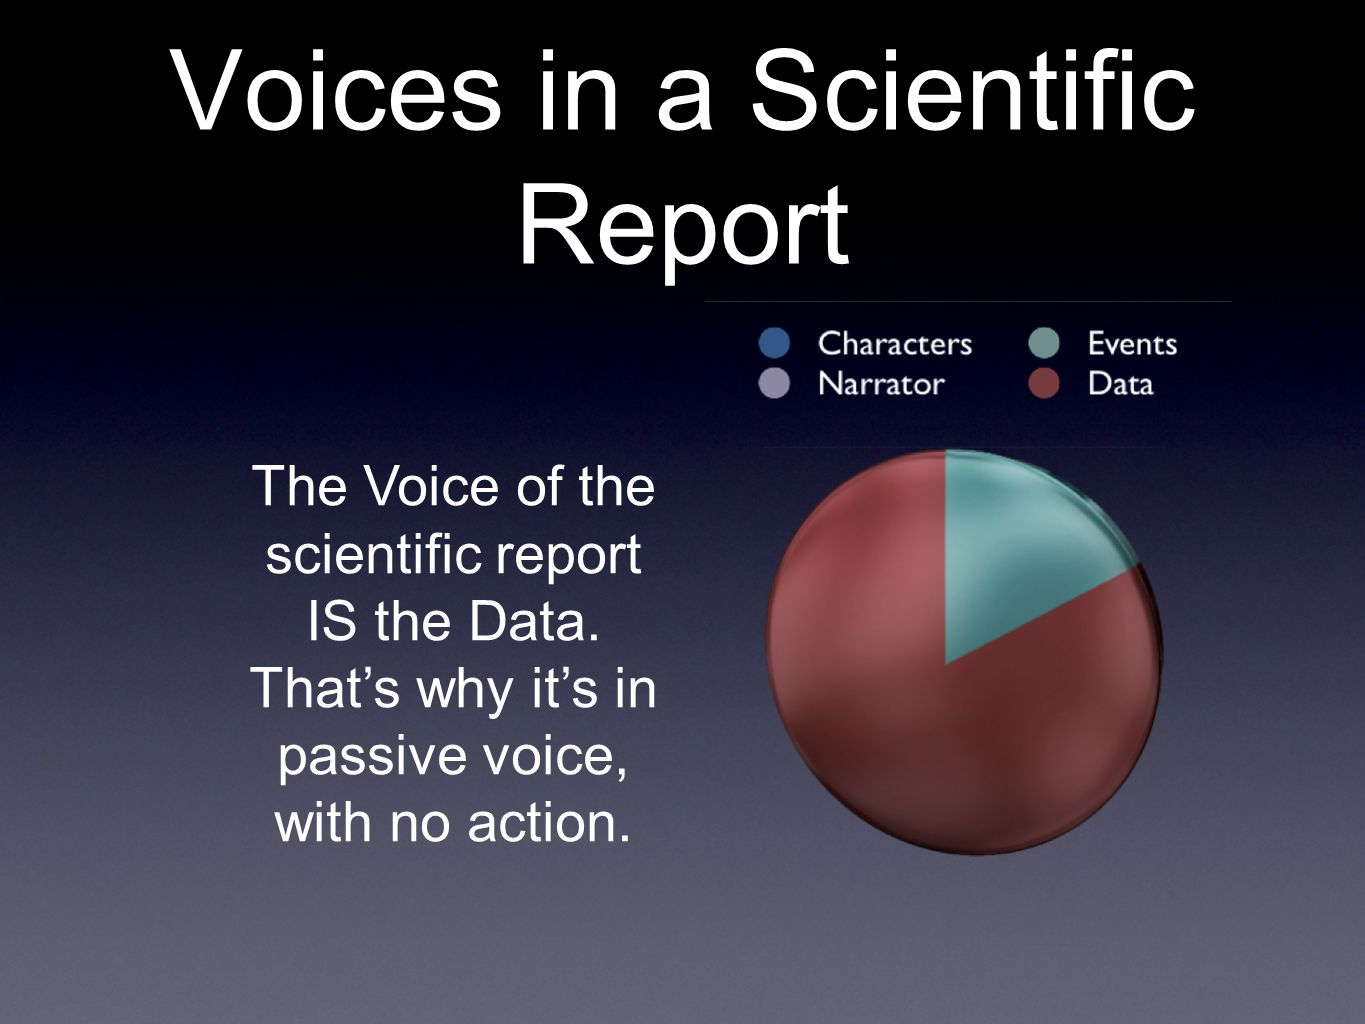 Voices in a Scientific Report The Voice of the scientific report IS the Data.